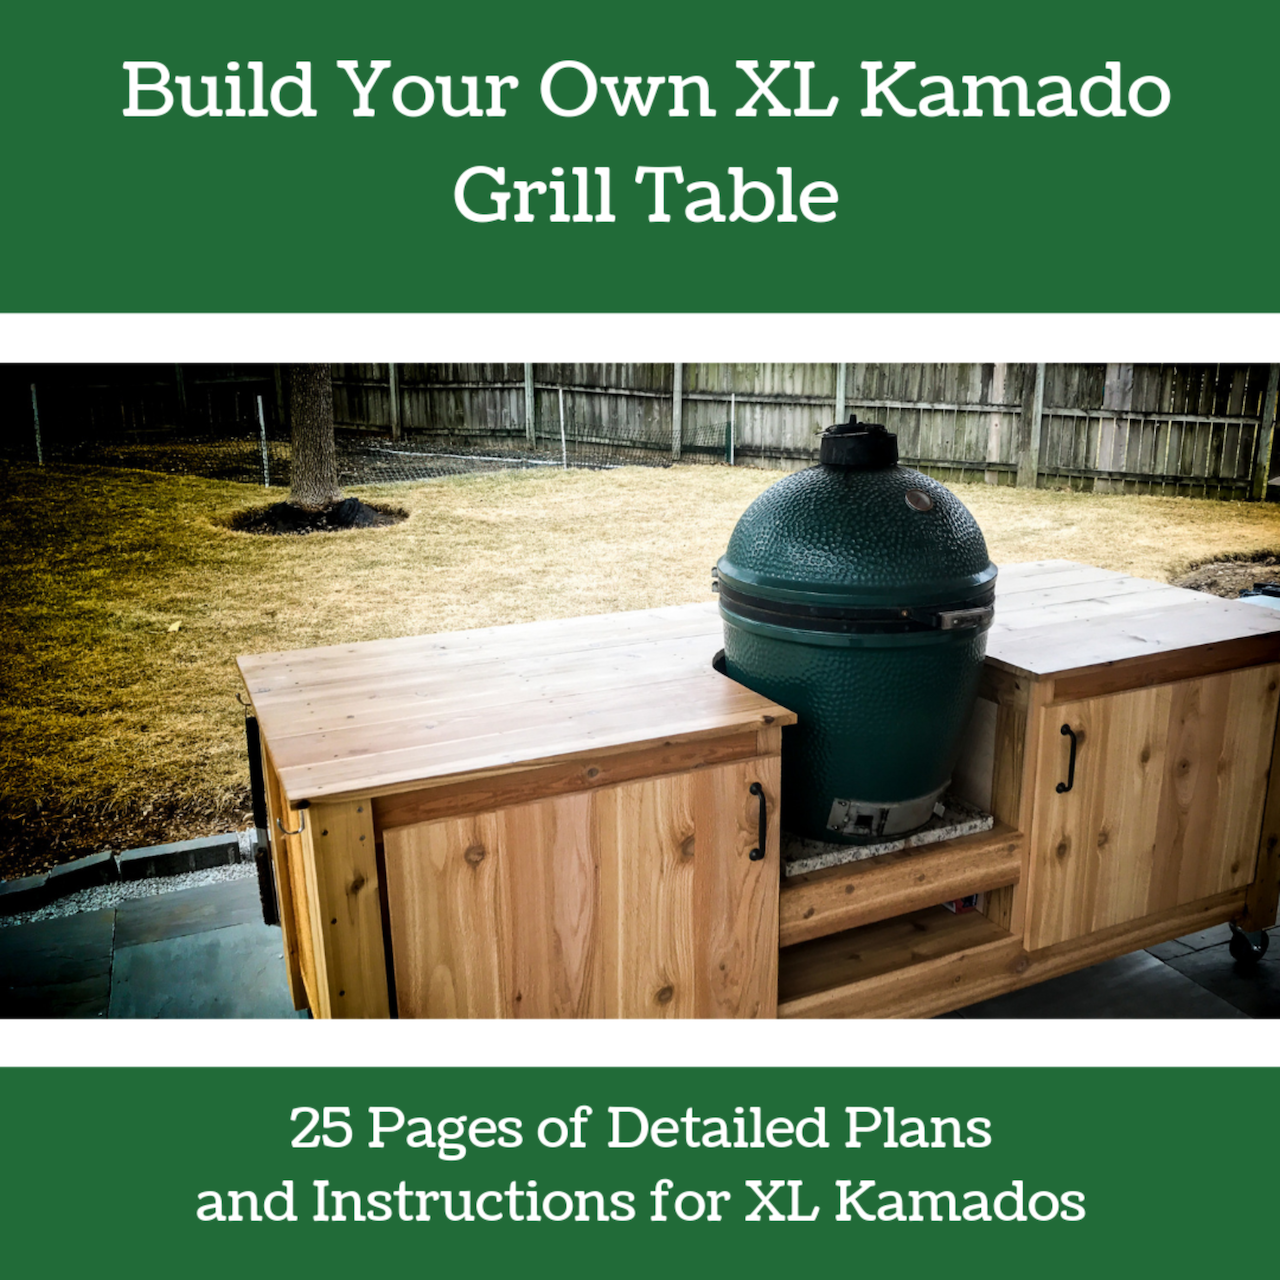 Build Your Own XL Kamado Grill Table